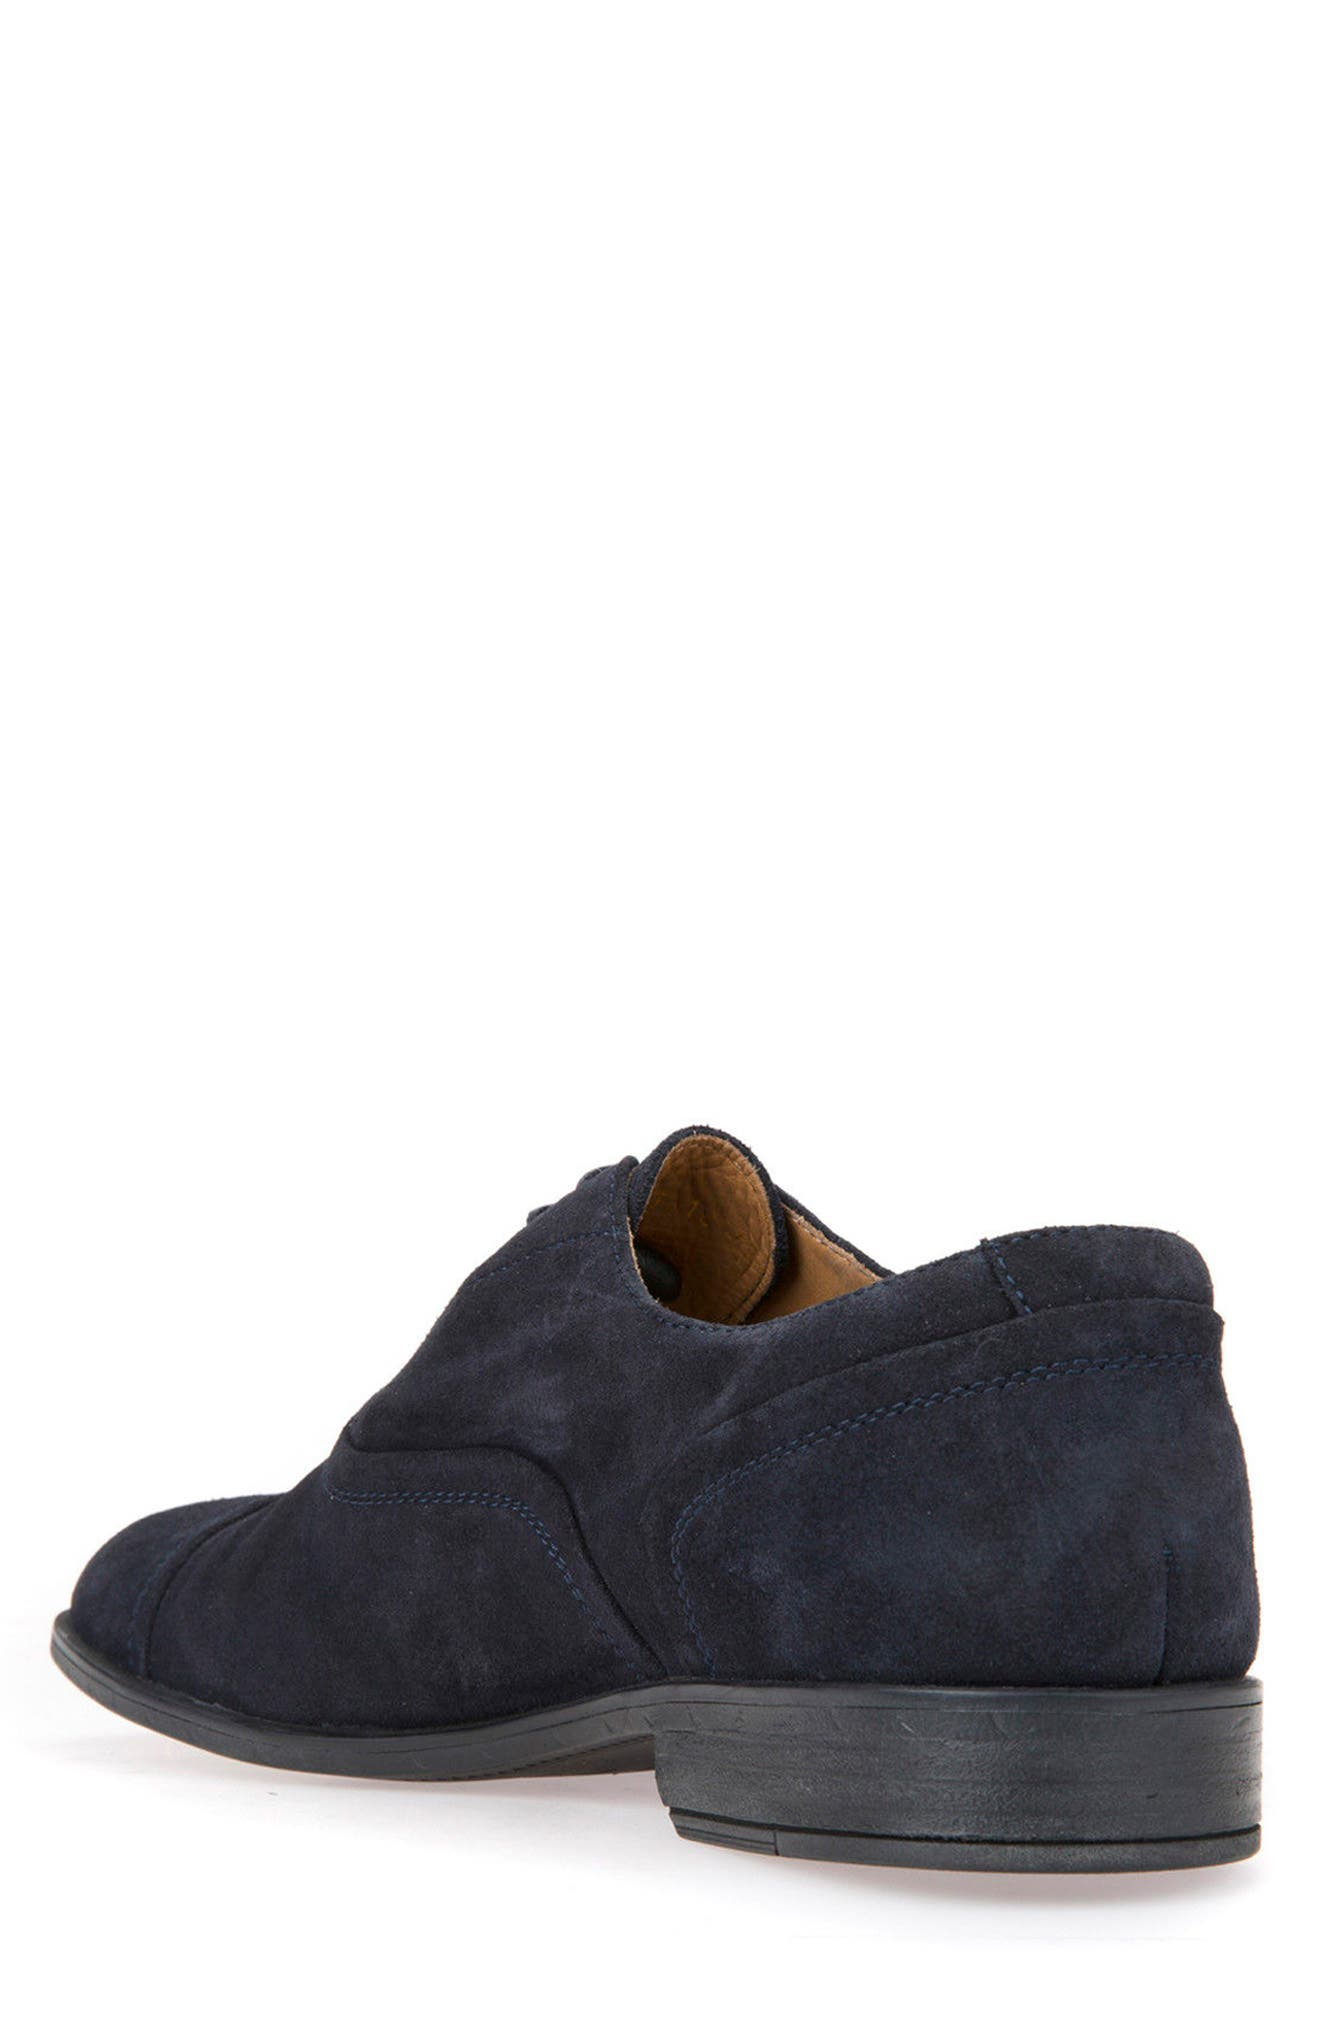 Bryceton 2 Cap Toe Oxford,                             Alternate thumbnail 2, color,                             Navy Suede